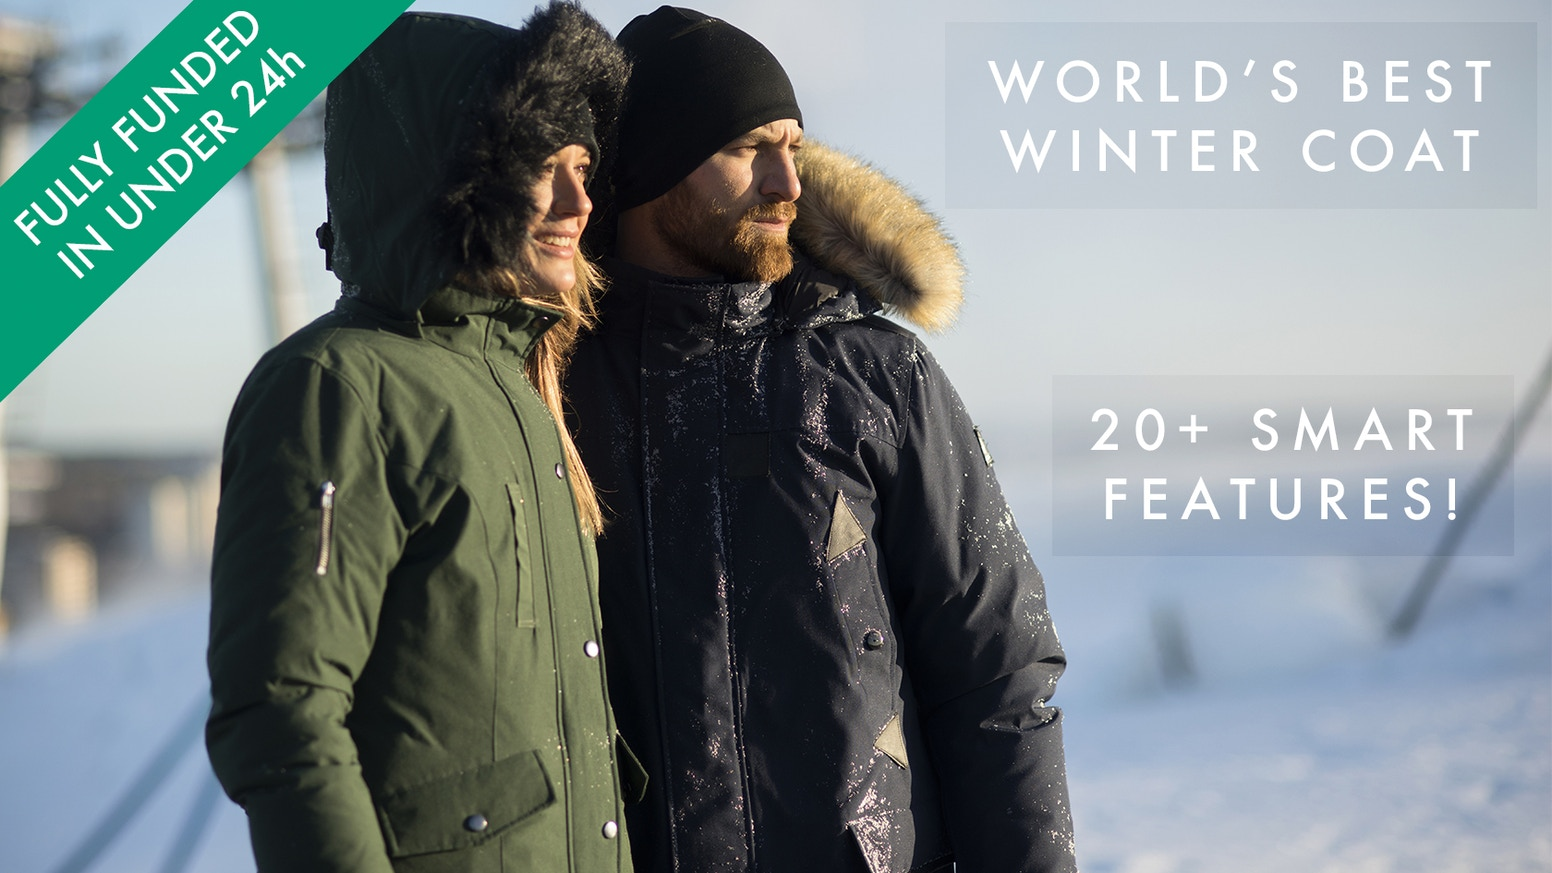 Norrland Parka is the first winter coat with 20+ built in smart features: Wi-Fi, Powerbank, Gloves and much more! Available now at Indiegogo! Press the button below: